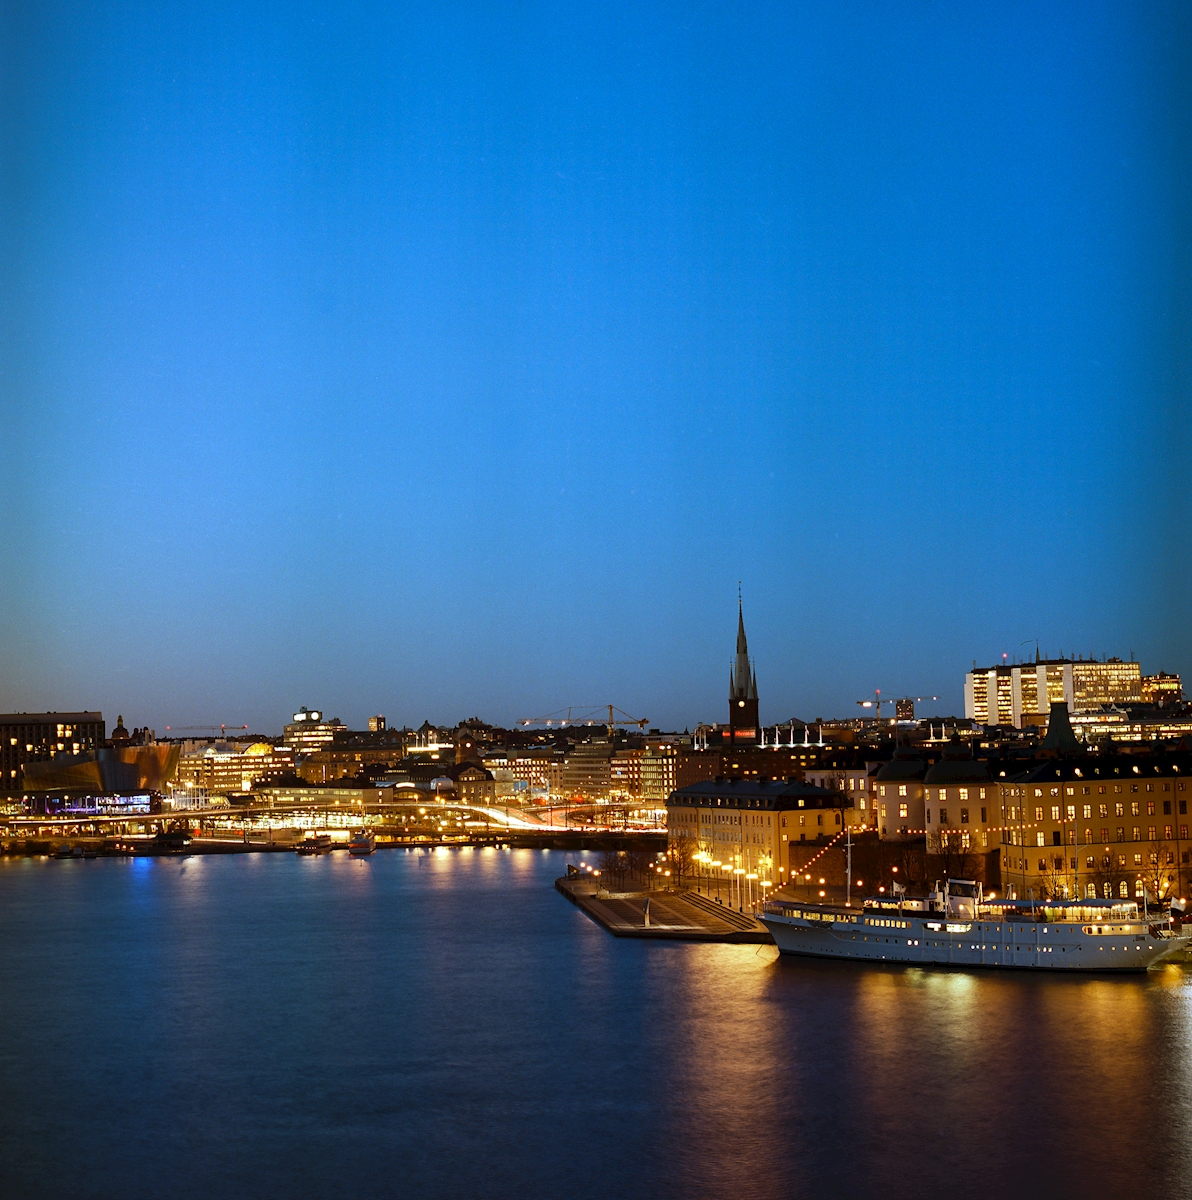 Stockholm by night posters & prints by Gunnar Eld